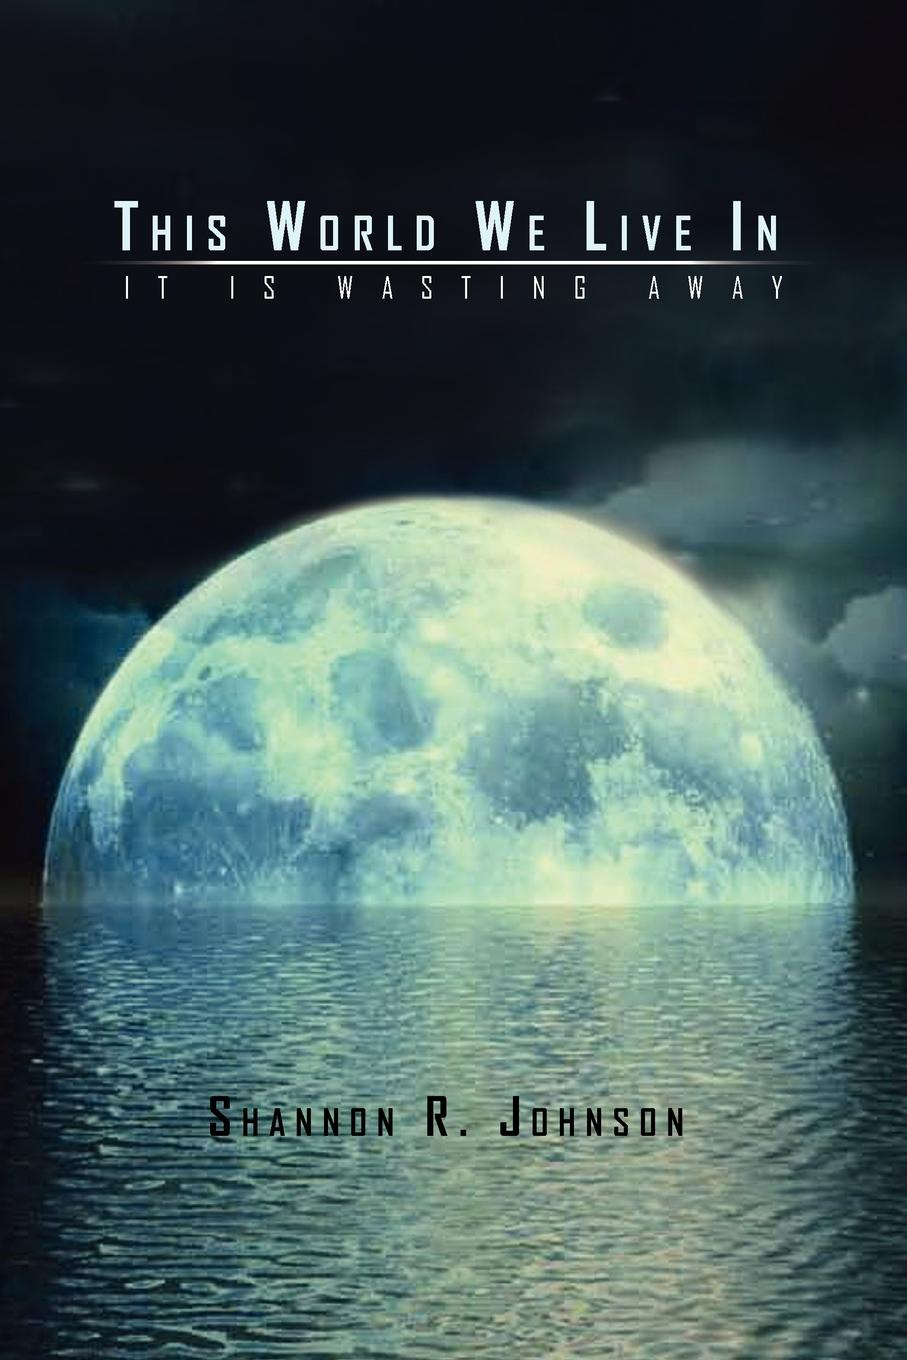 Shannon R. Johnson This World We Live In